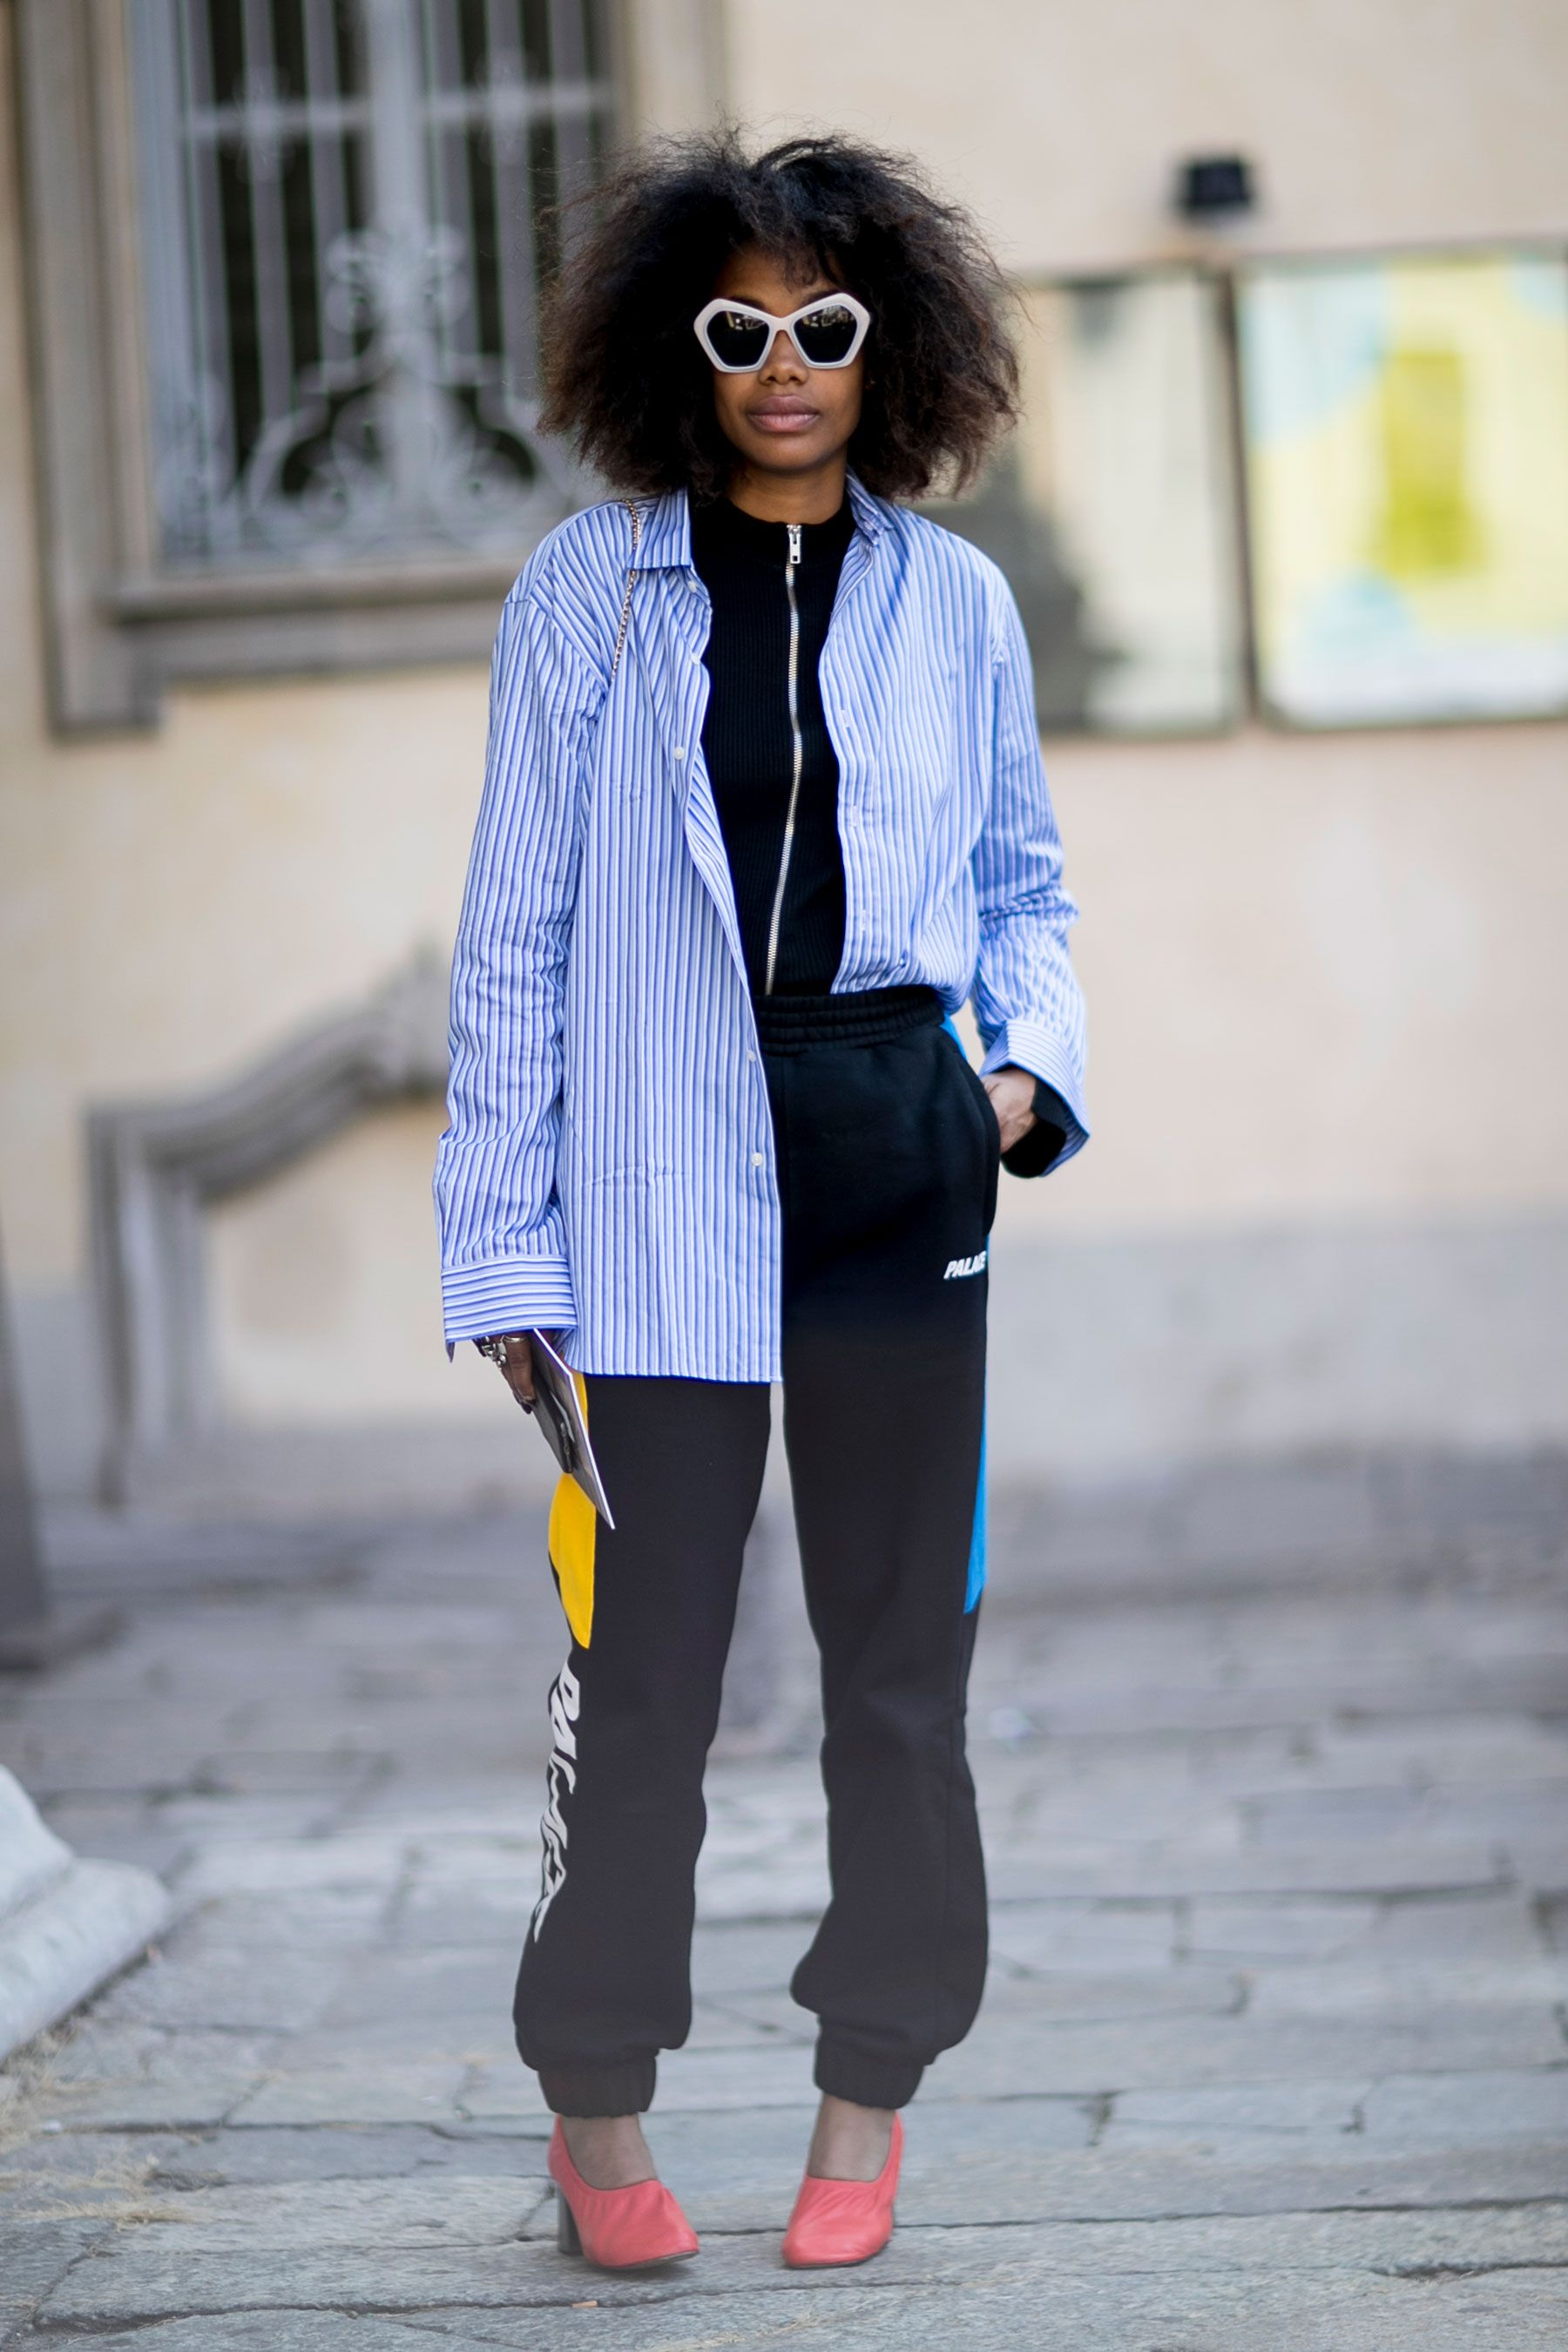 Milan Fashion Week SS17 Street Style: Day 4